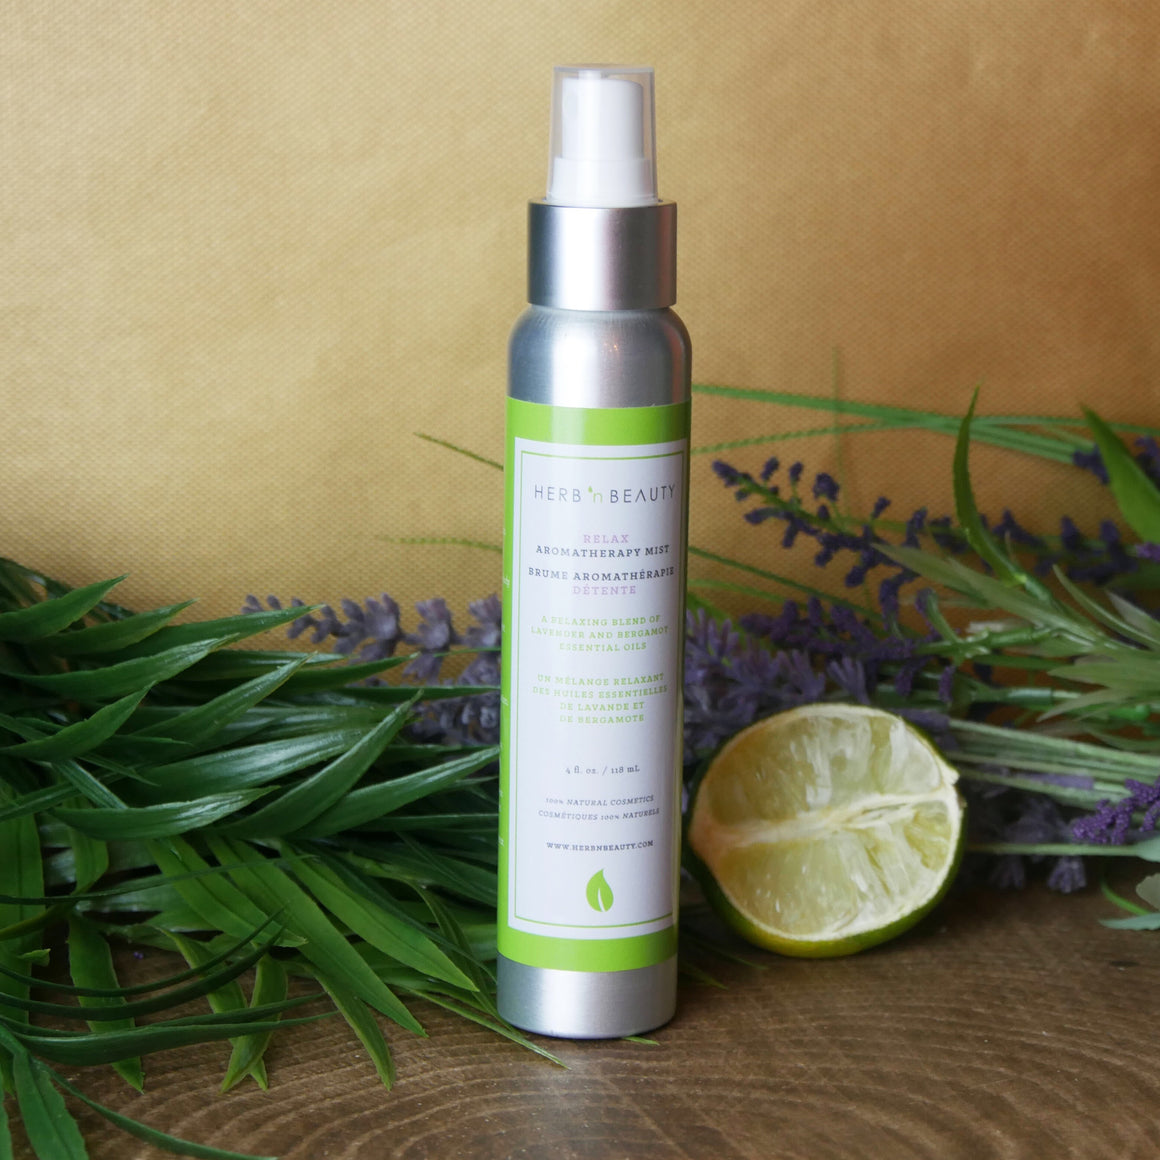 relax essential oil mist with bergamot and lavender